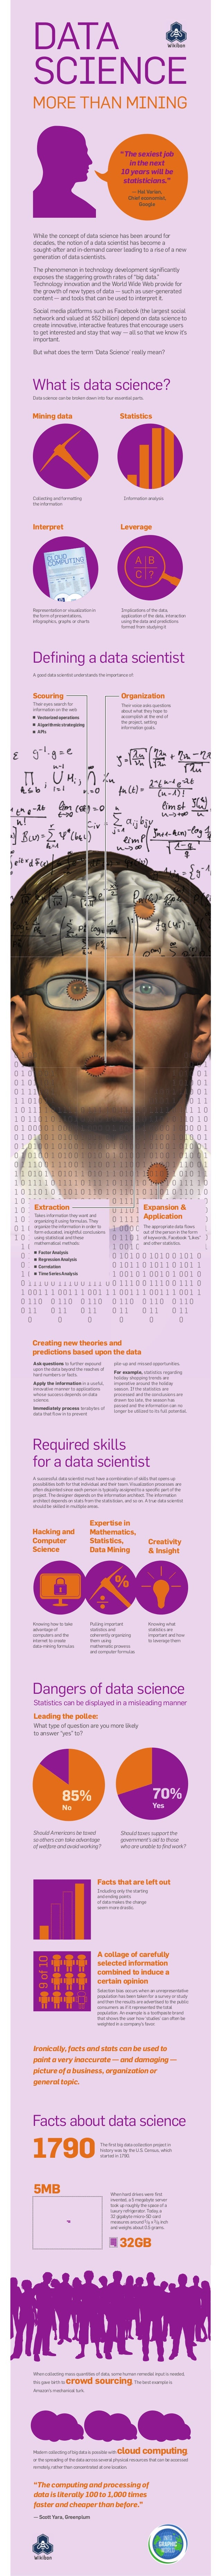 """DATASCIENCEMORE THAN MINING                                                 """"The sexiest job                              ..."""